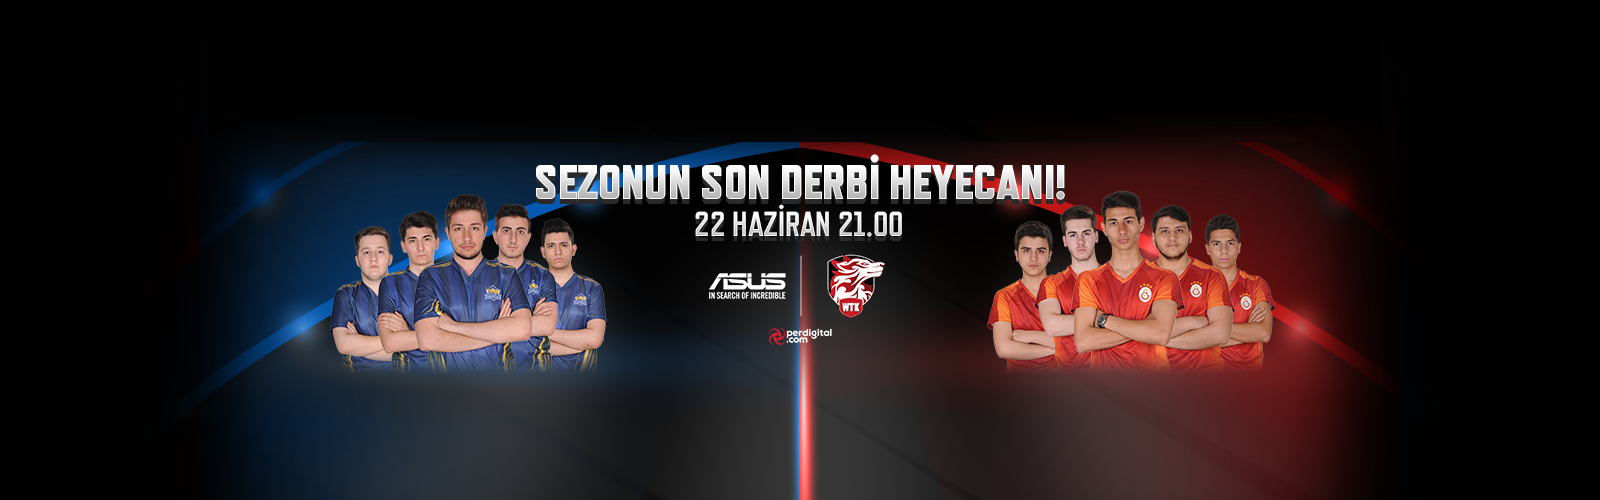 GS - FB Derbi Haziran 2018